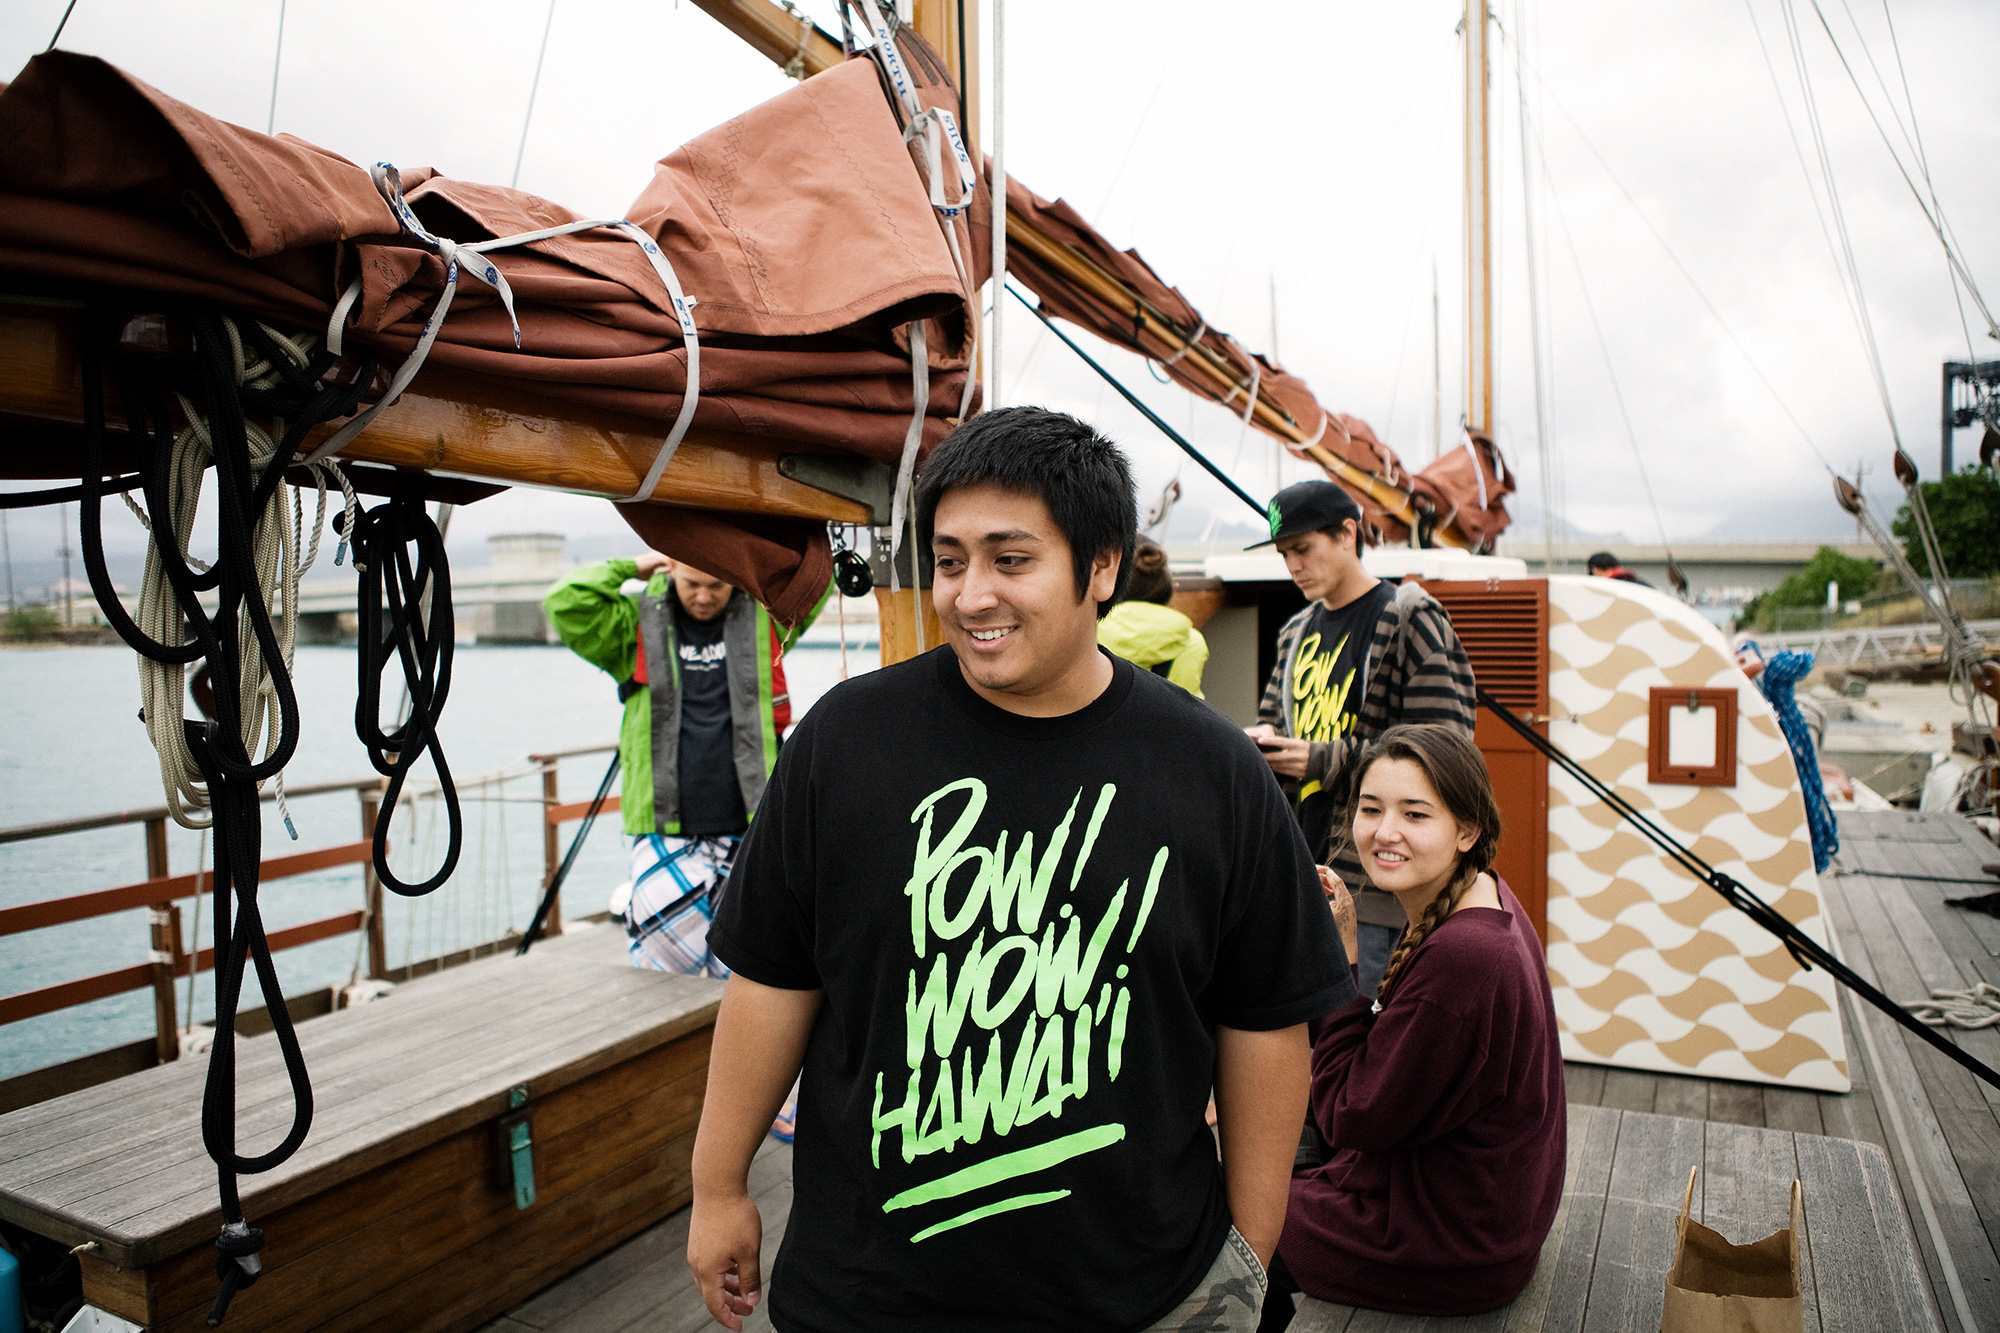 pow wow hawaii x polynesian voyaging society hokulea canoe project